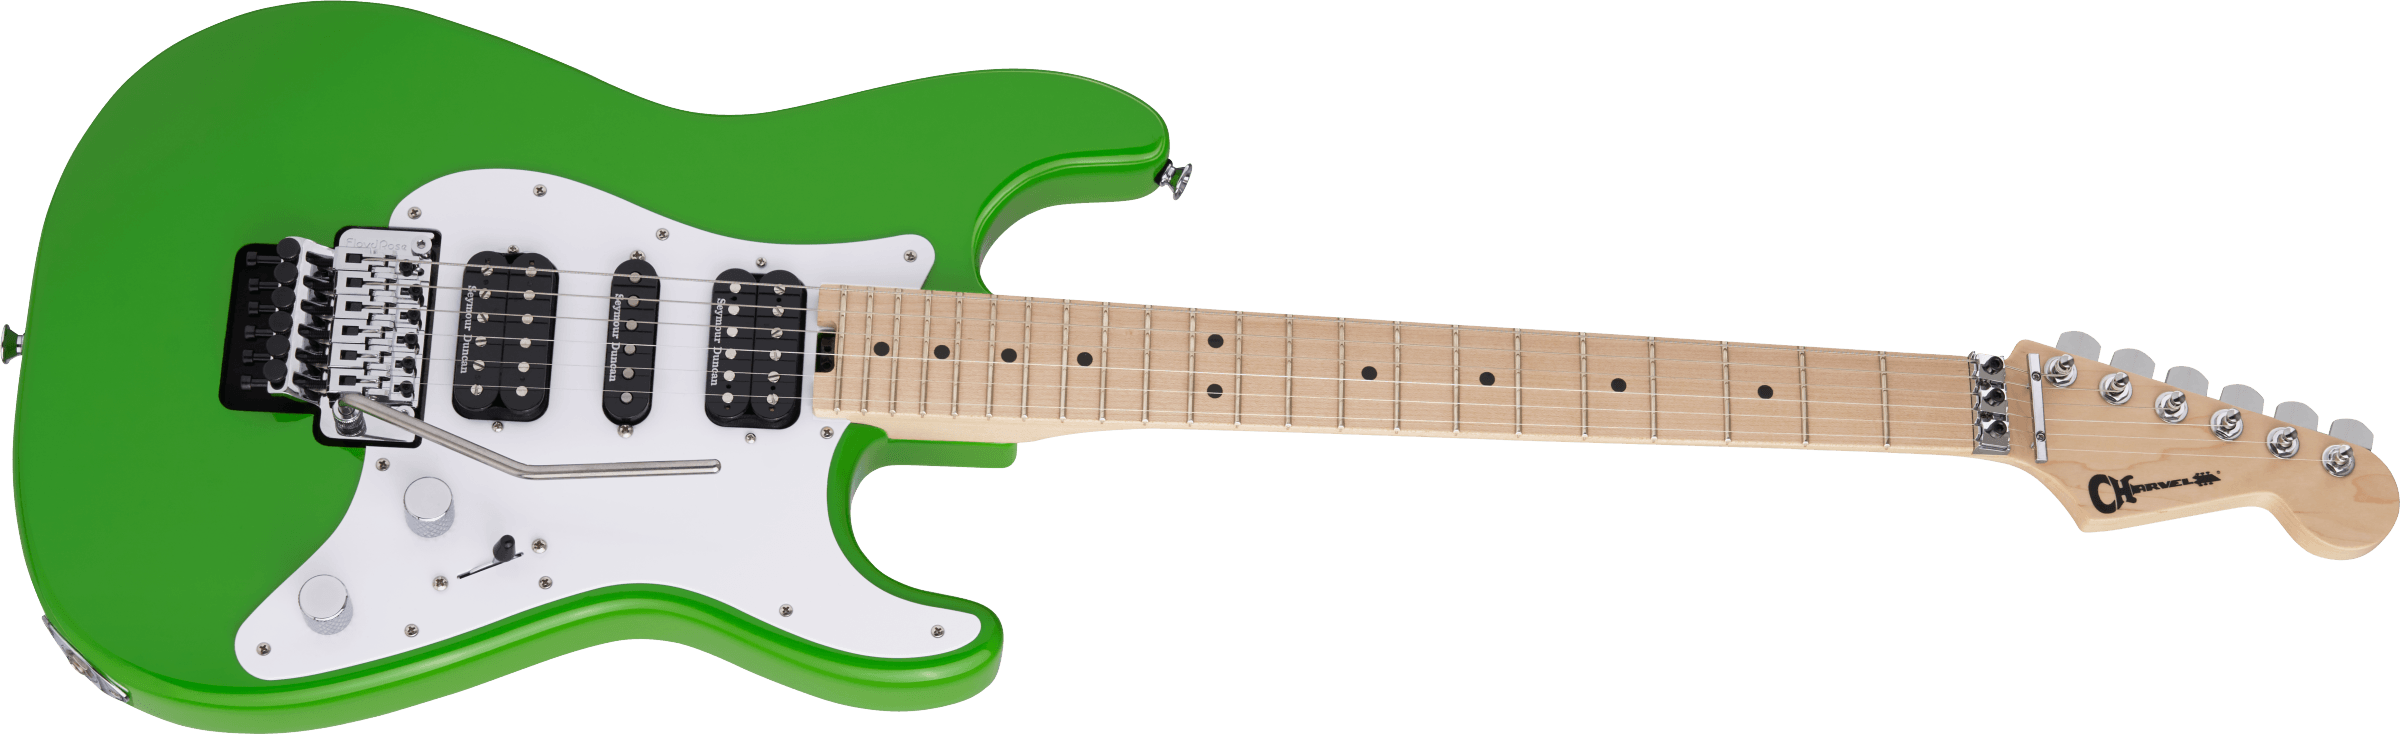 Charvel Pro-Mod So-Cal Style 1 HSH FR M, Maple Fingerboard, Slime Green